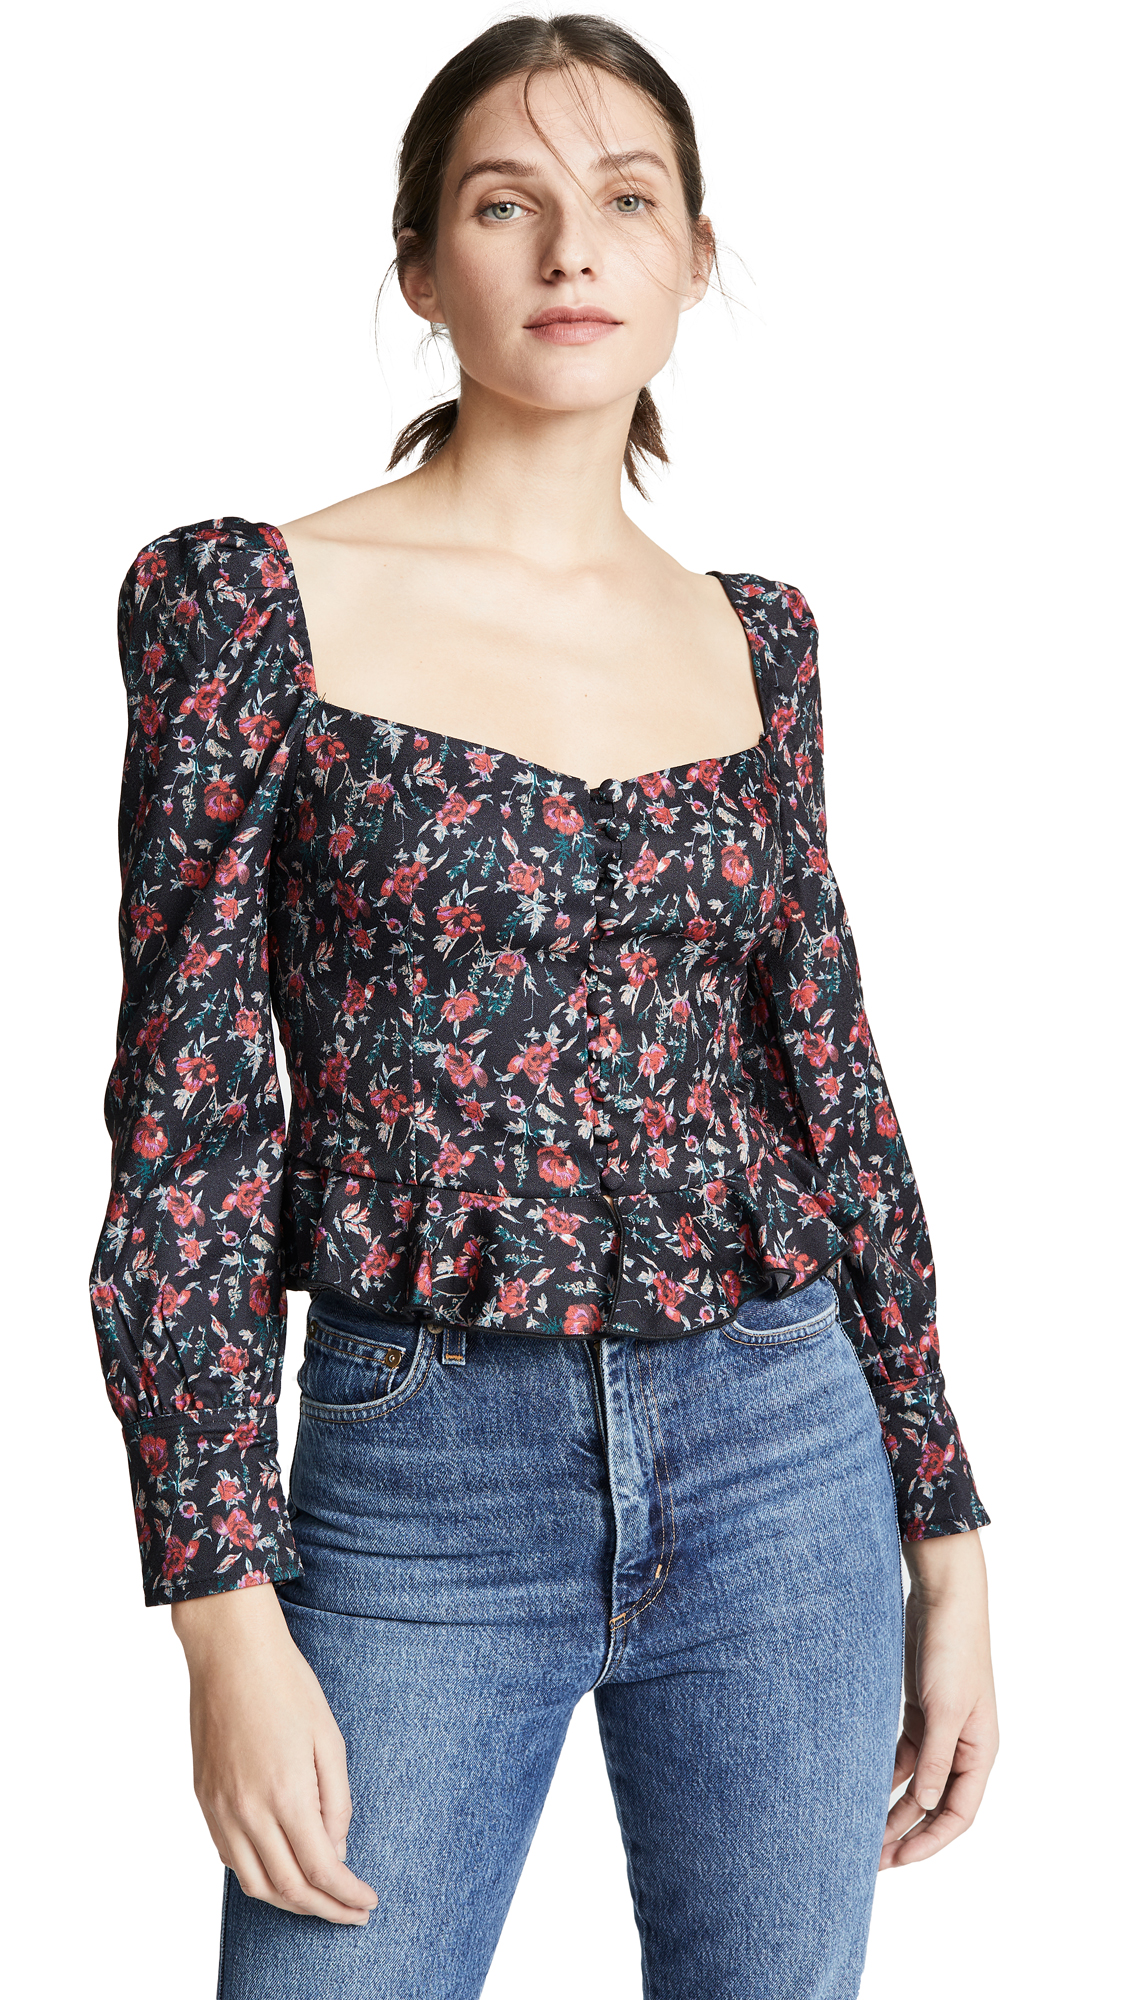 LIONESS Sweethearts Top in Black Based Red Floral